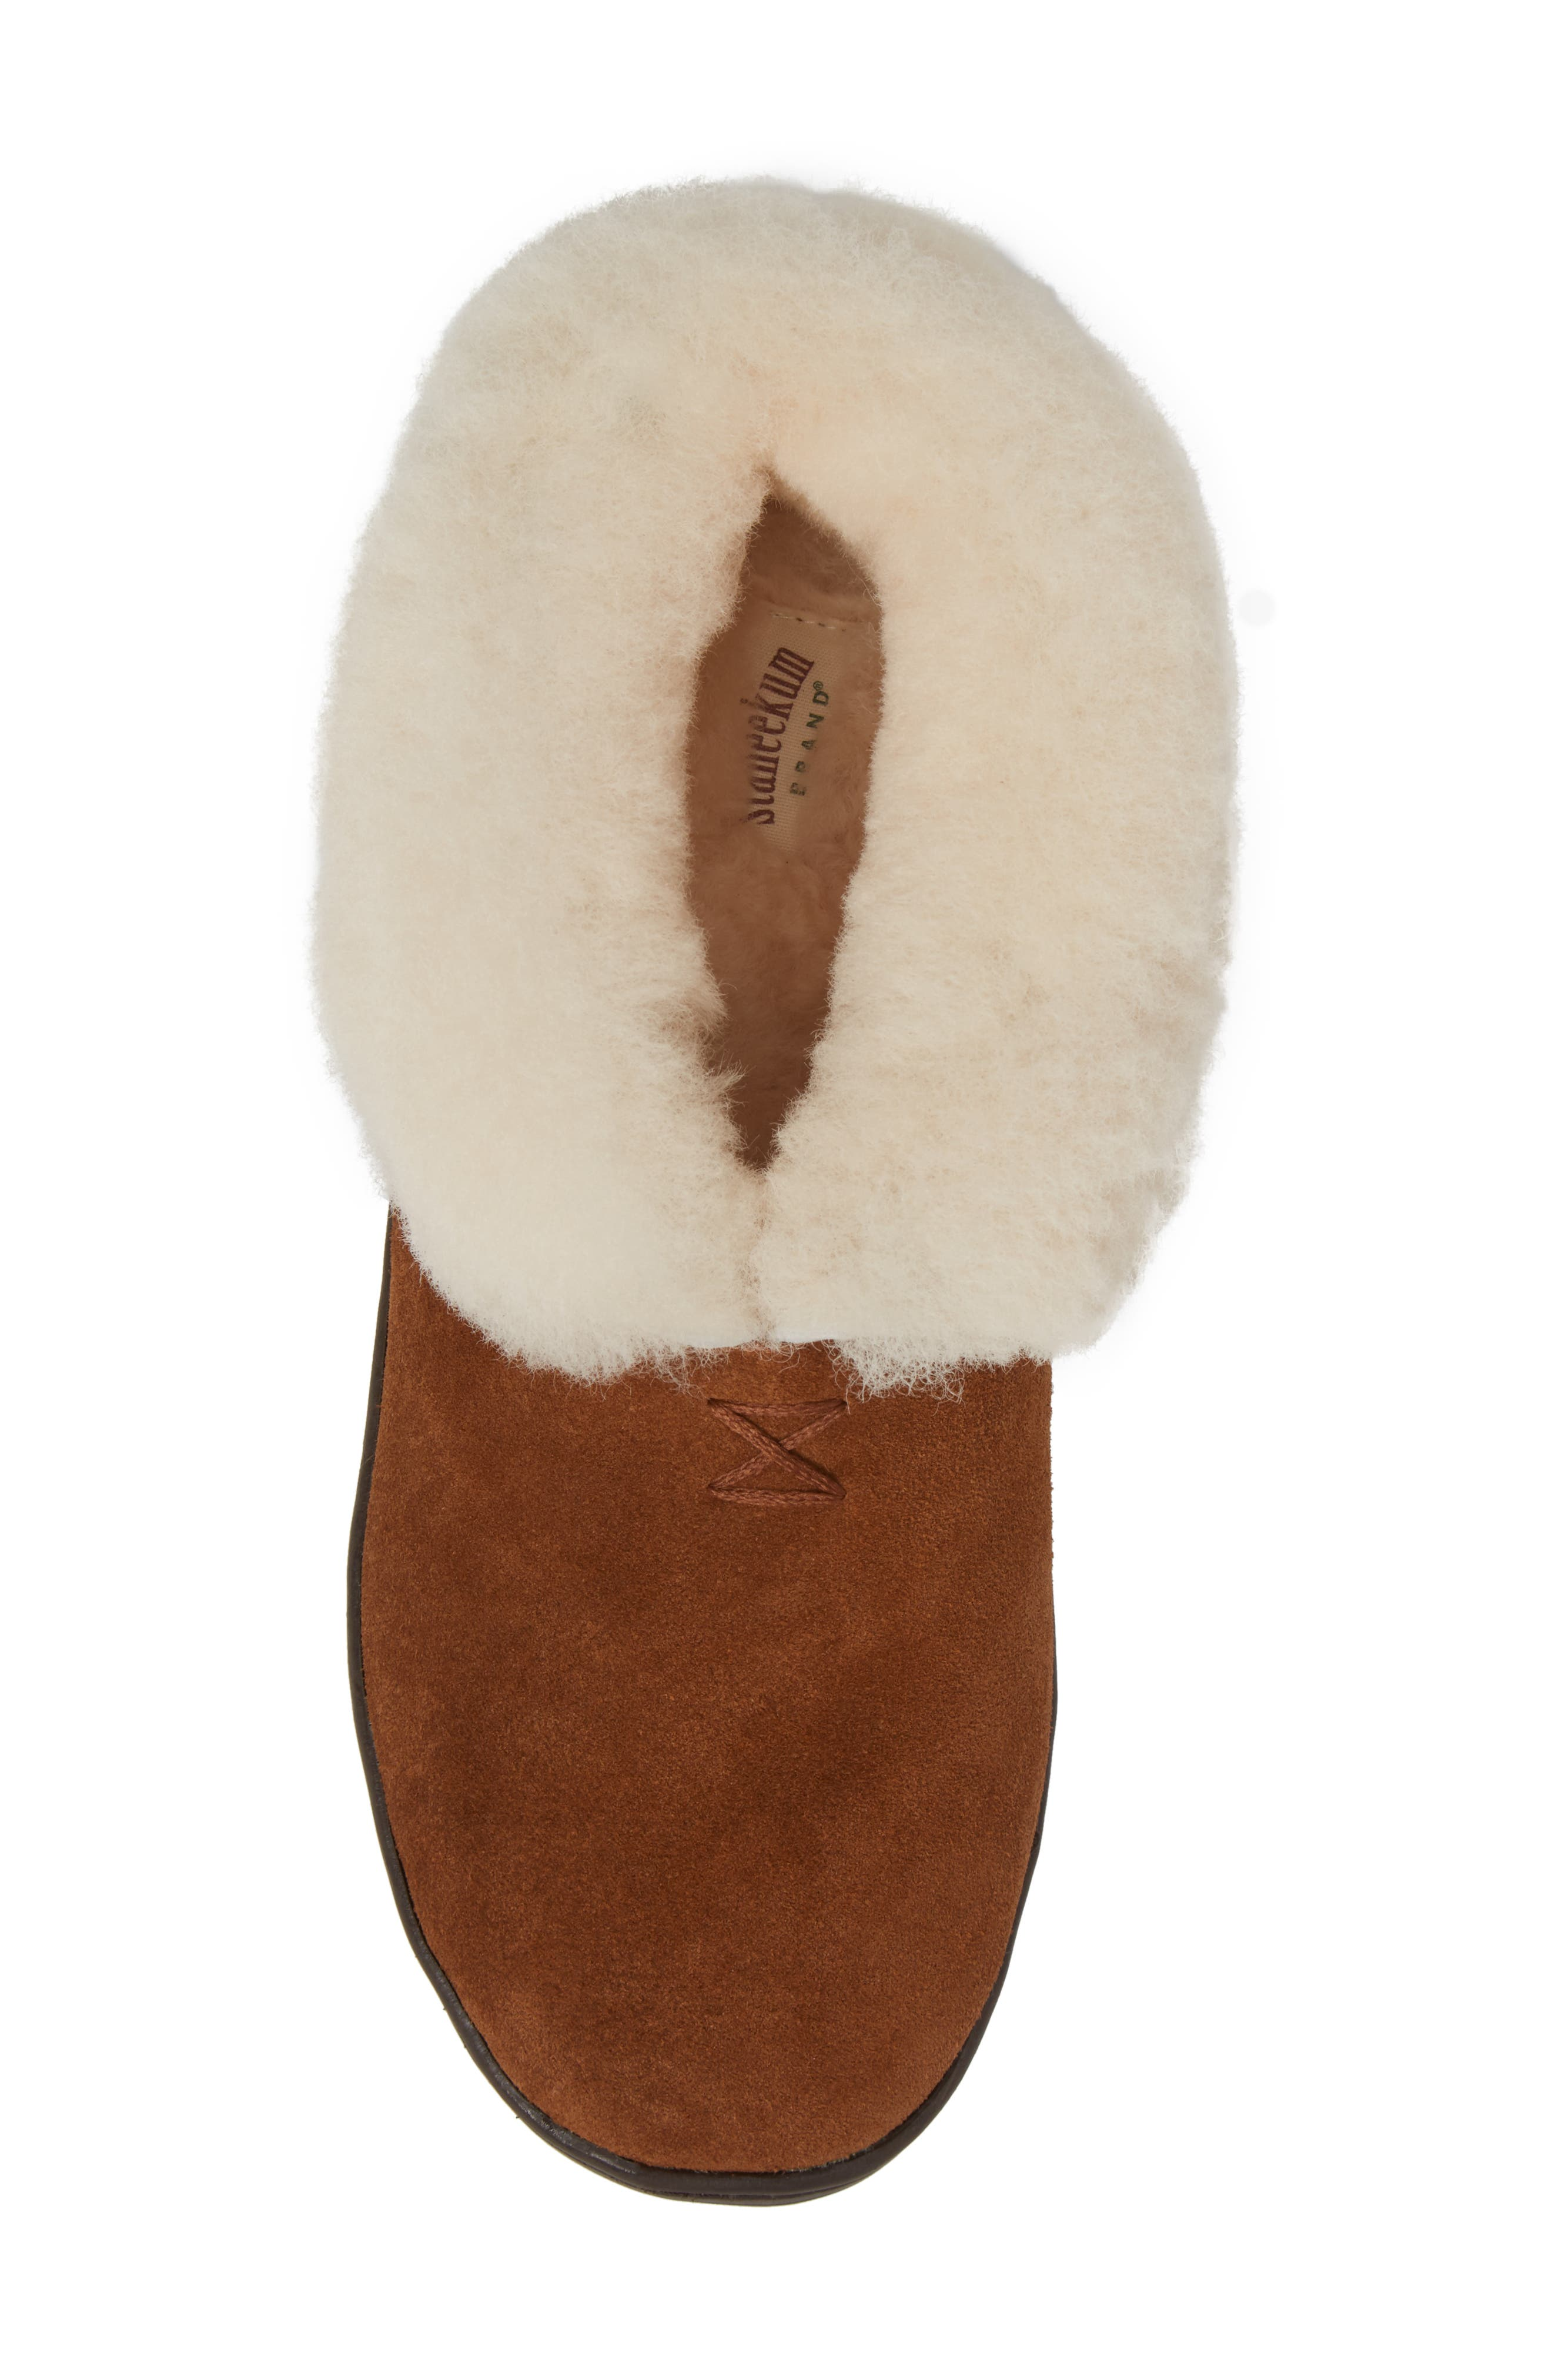 Tundra Slipper Bootie with Genuine Shearling Lining,                             Alternate thumbnail 5, color,                             212